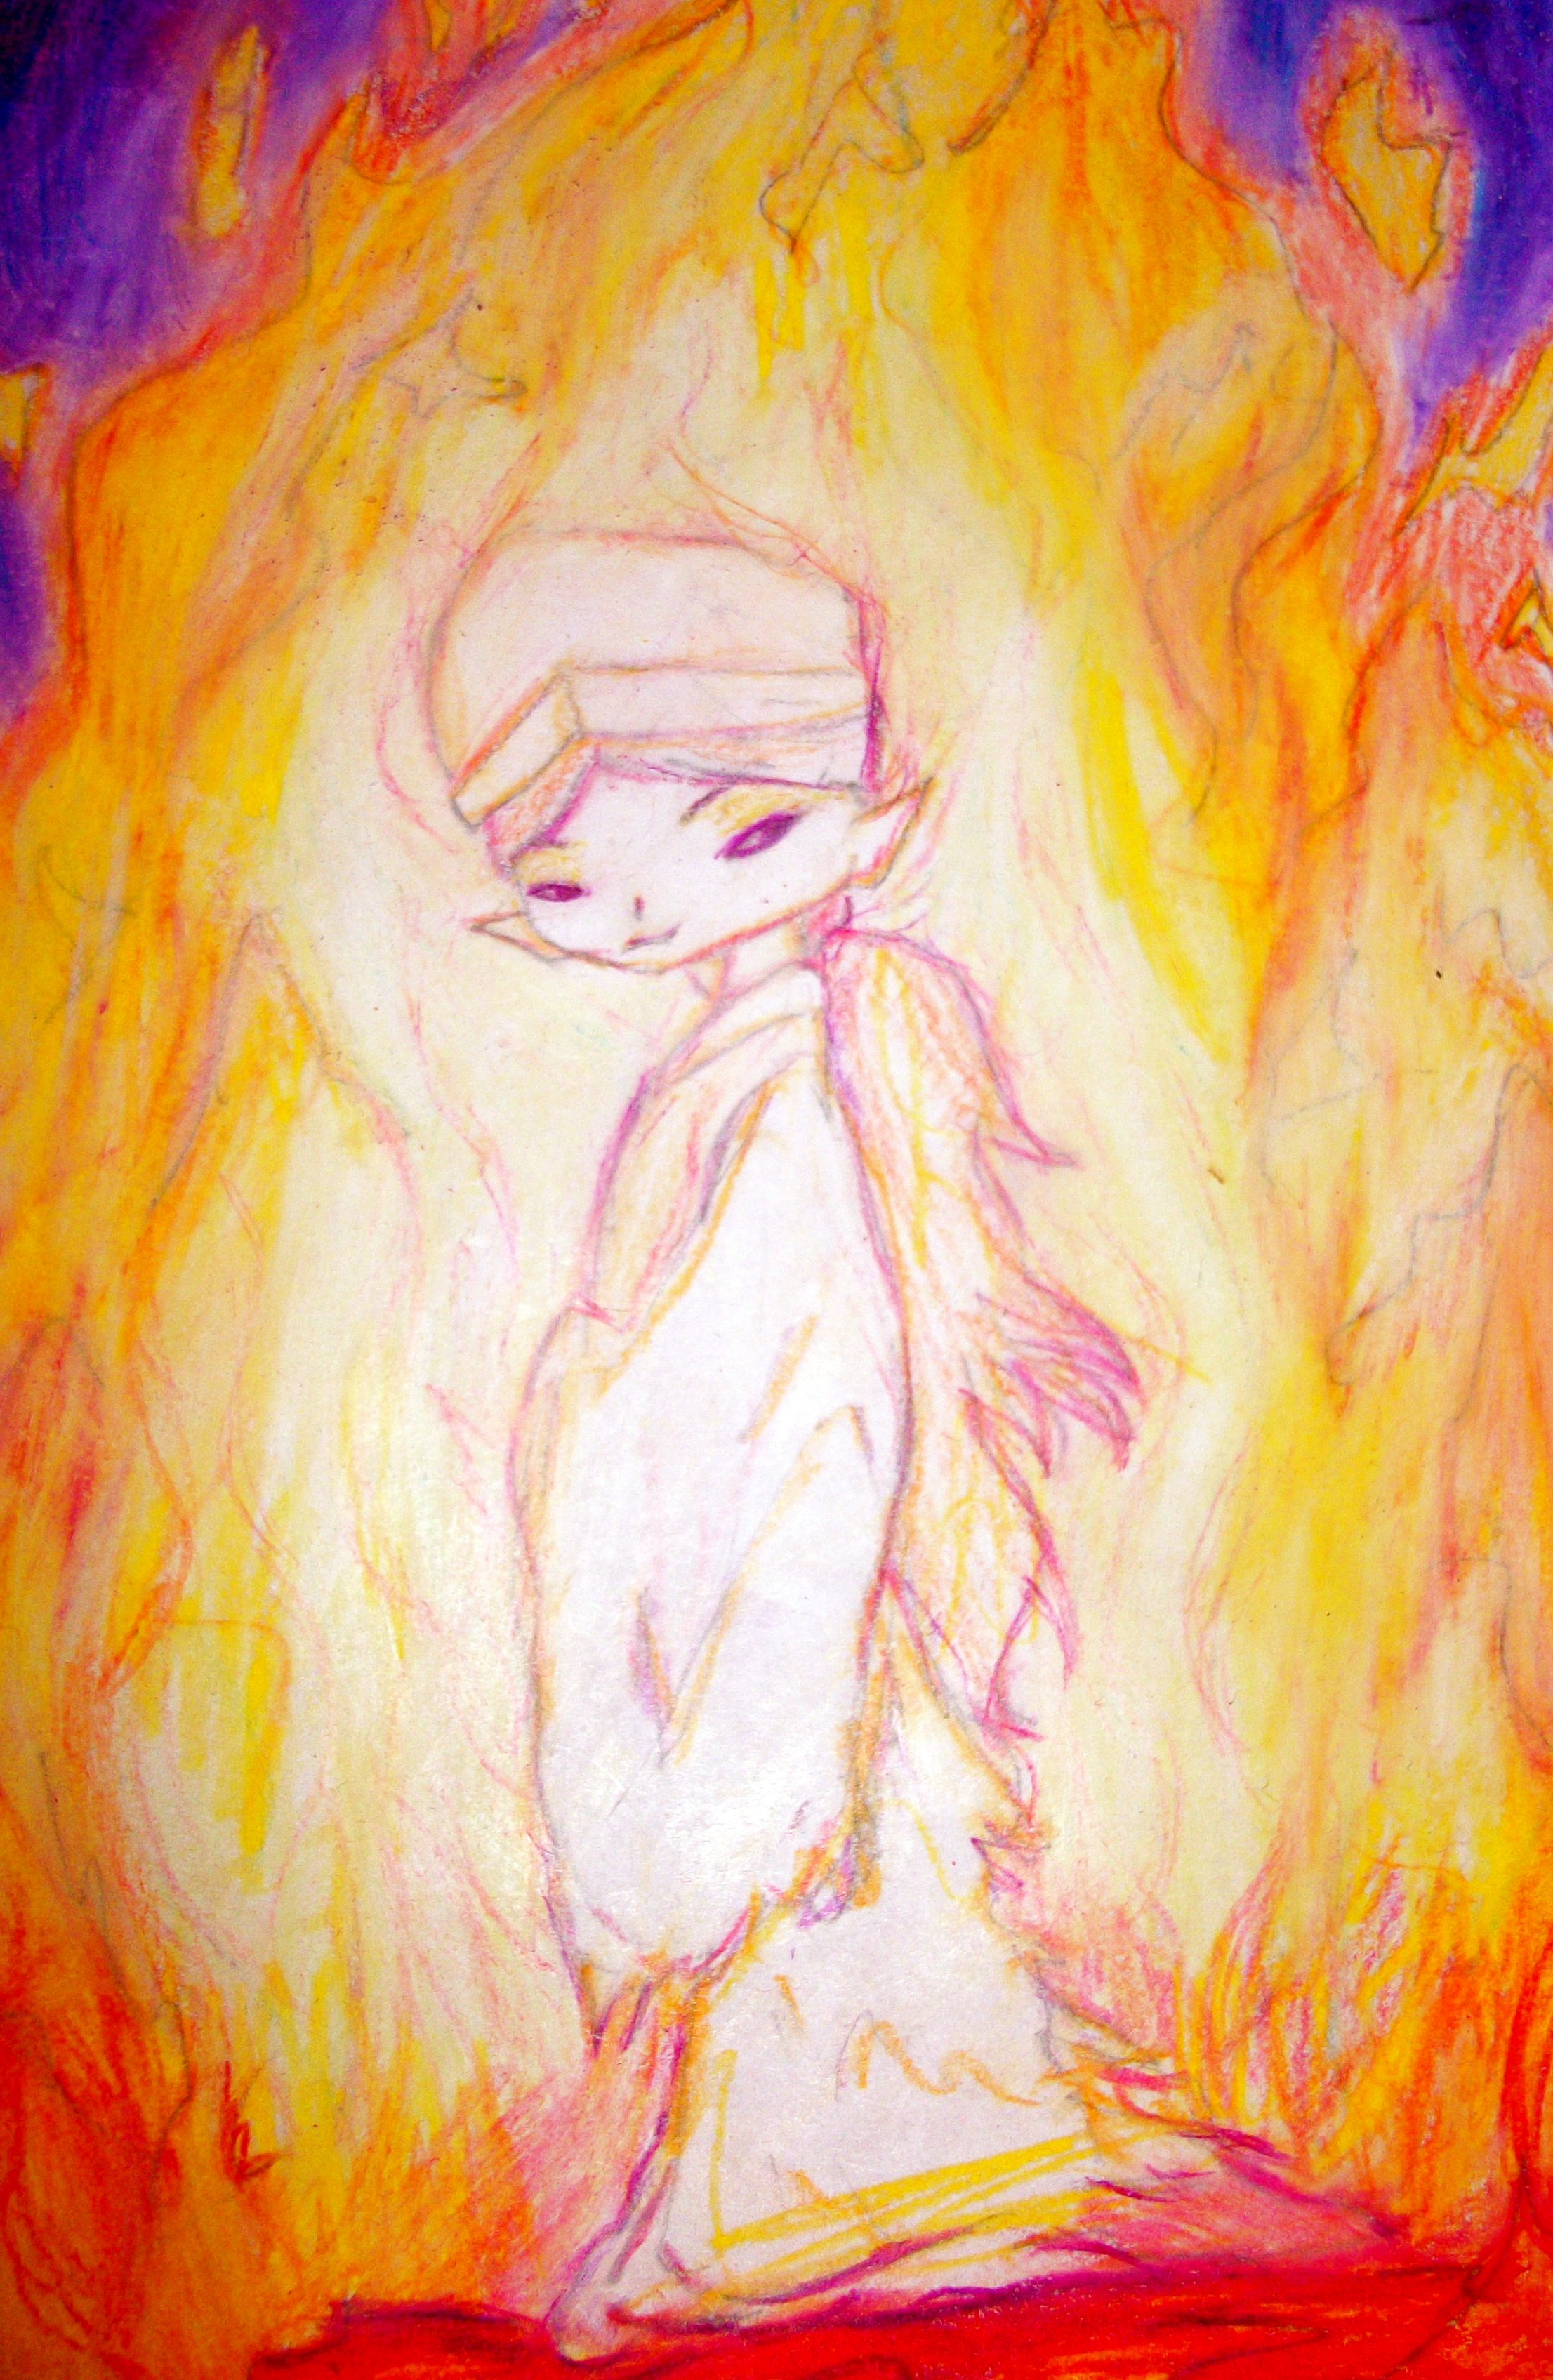 Wisp in the Flames